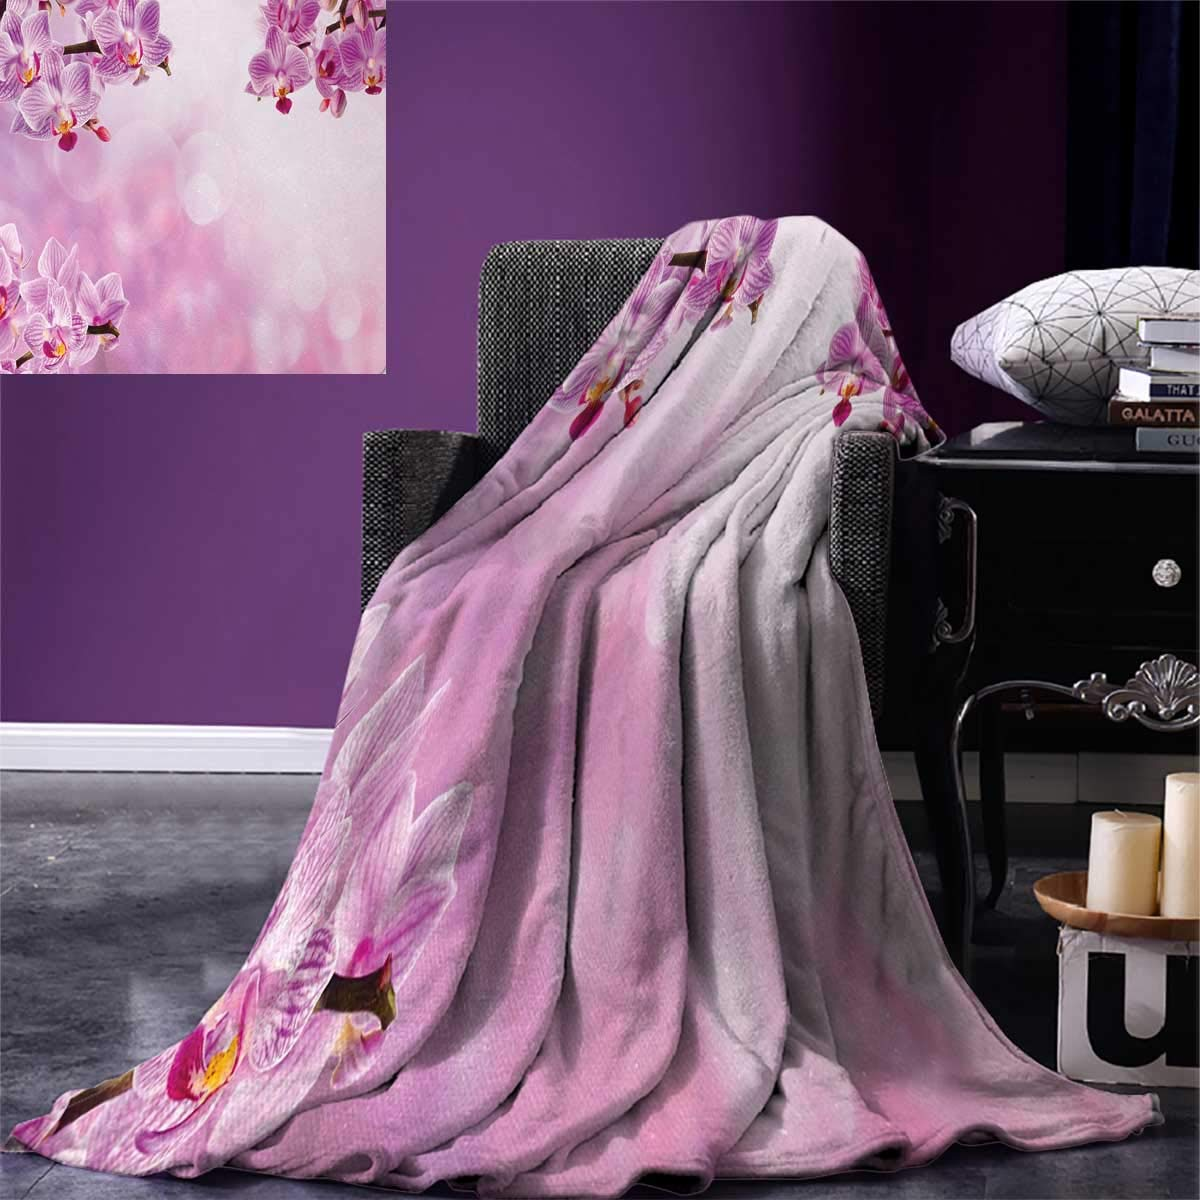 Spa Digital Printing Blanket Orchid Petals in Monochrome Design Bouquet Spring Bloom Seedling Growth Peaceful Nature Print Summer Quilt Comforter 80''x60'' Pink